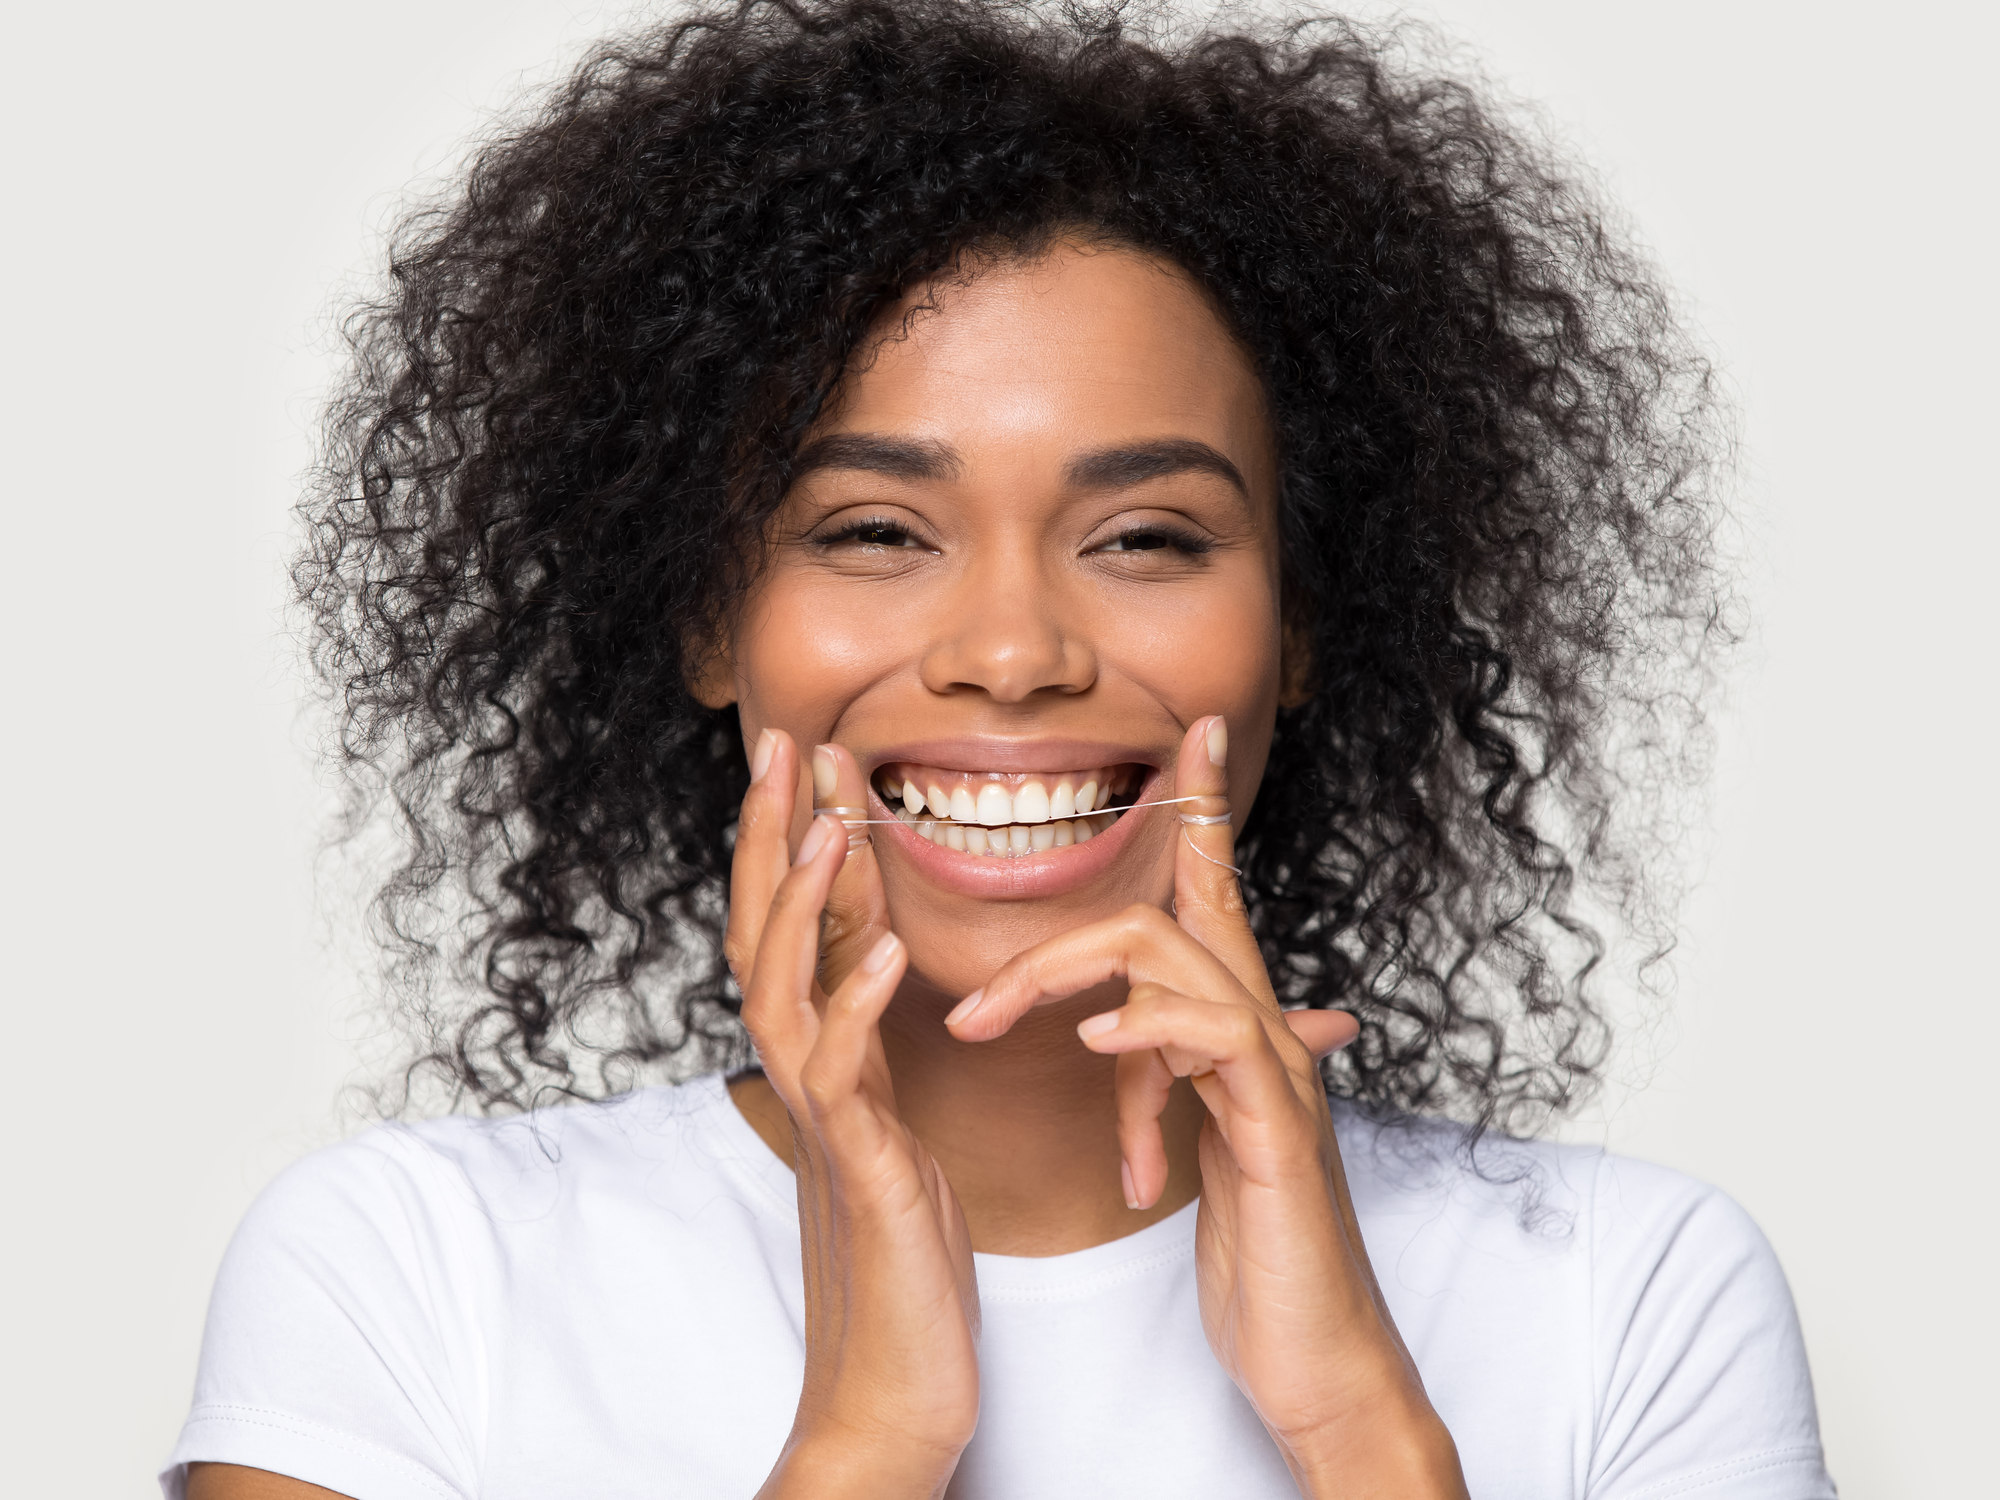 Why Are Regular Dental Cleanings and Exams Important for Overall Health?